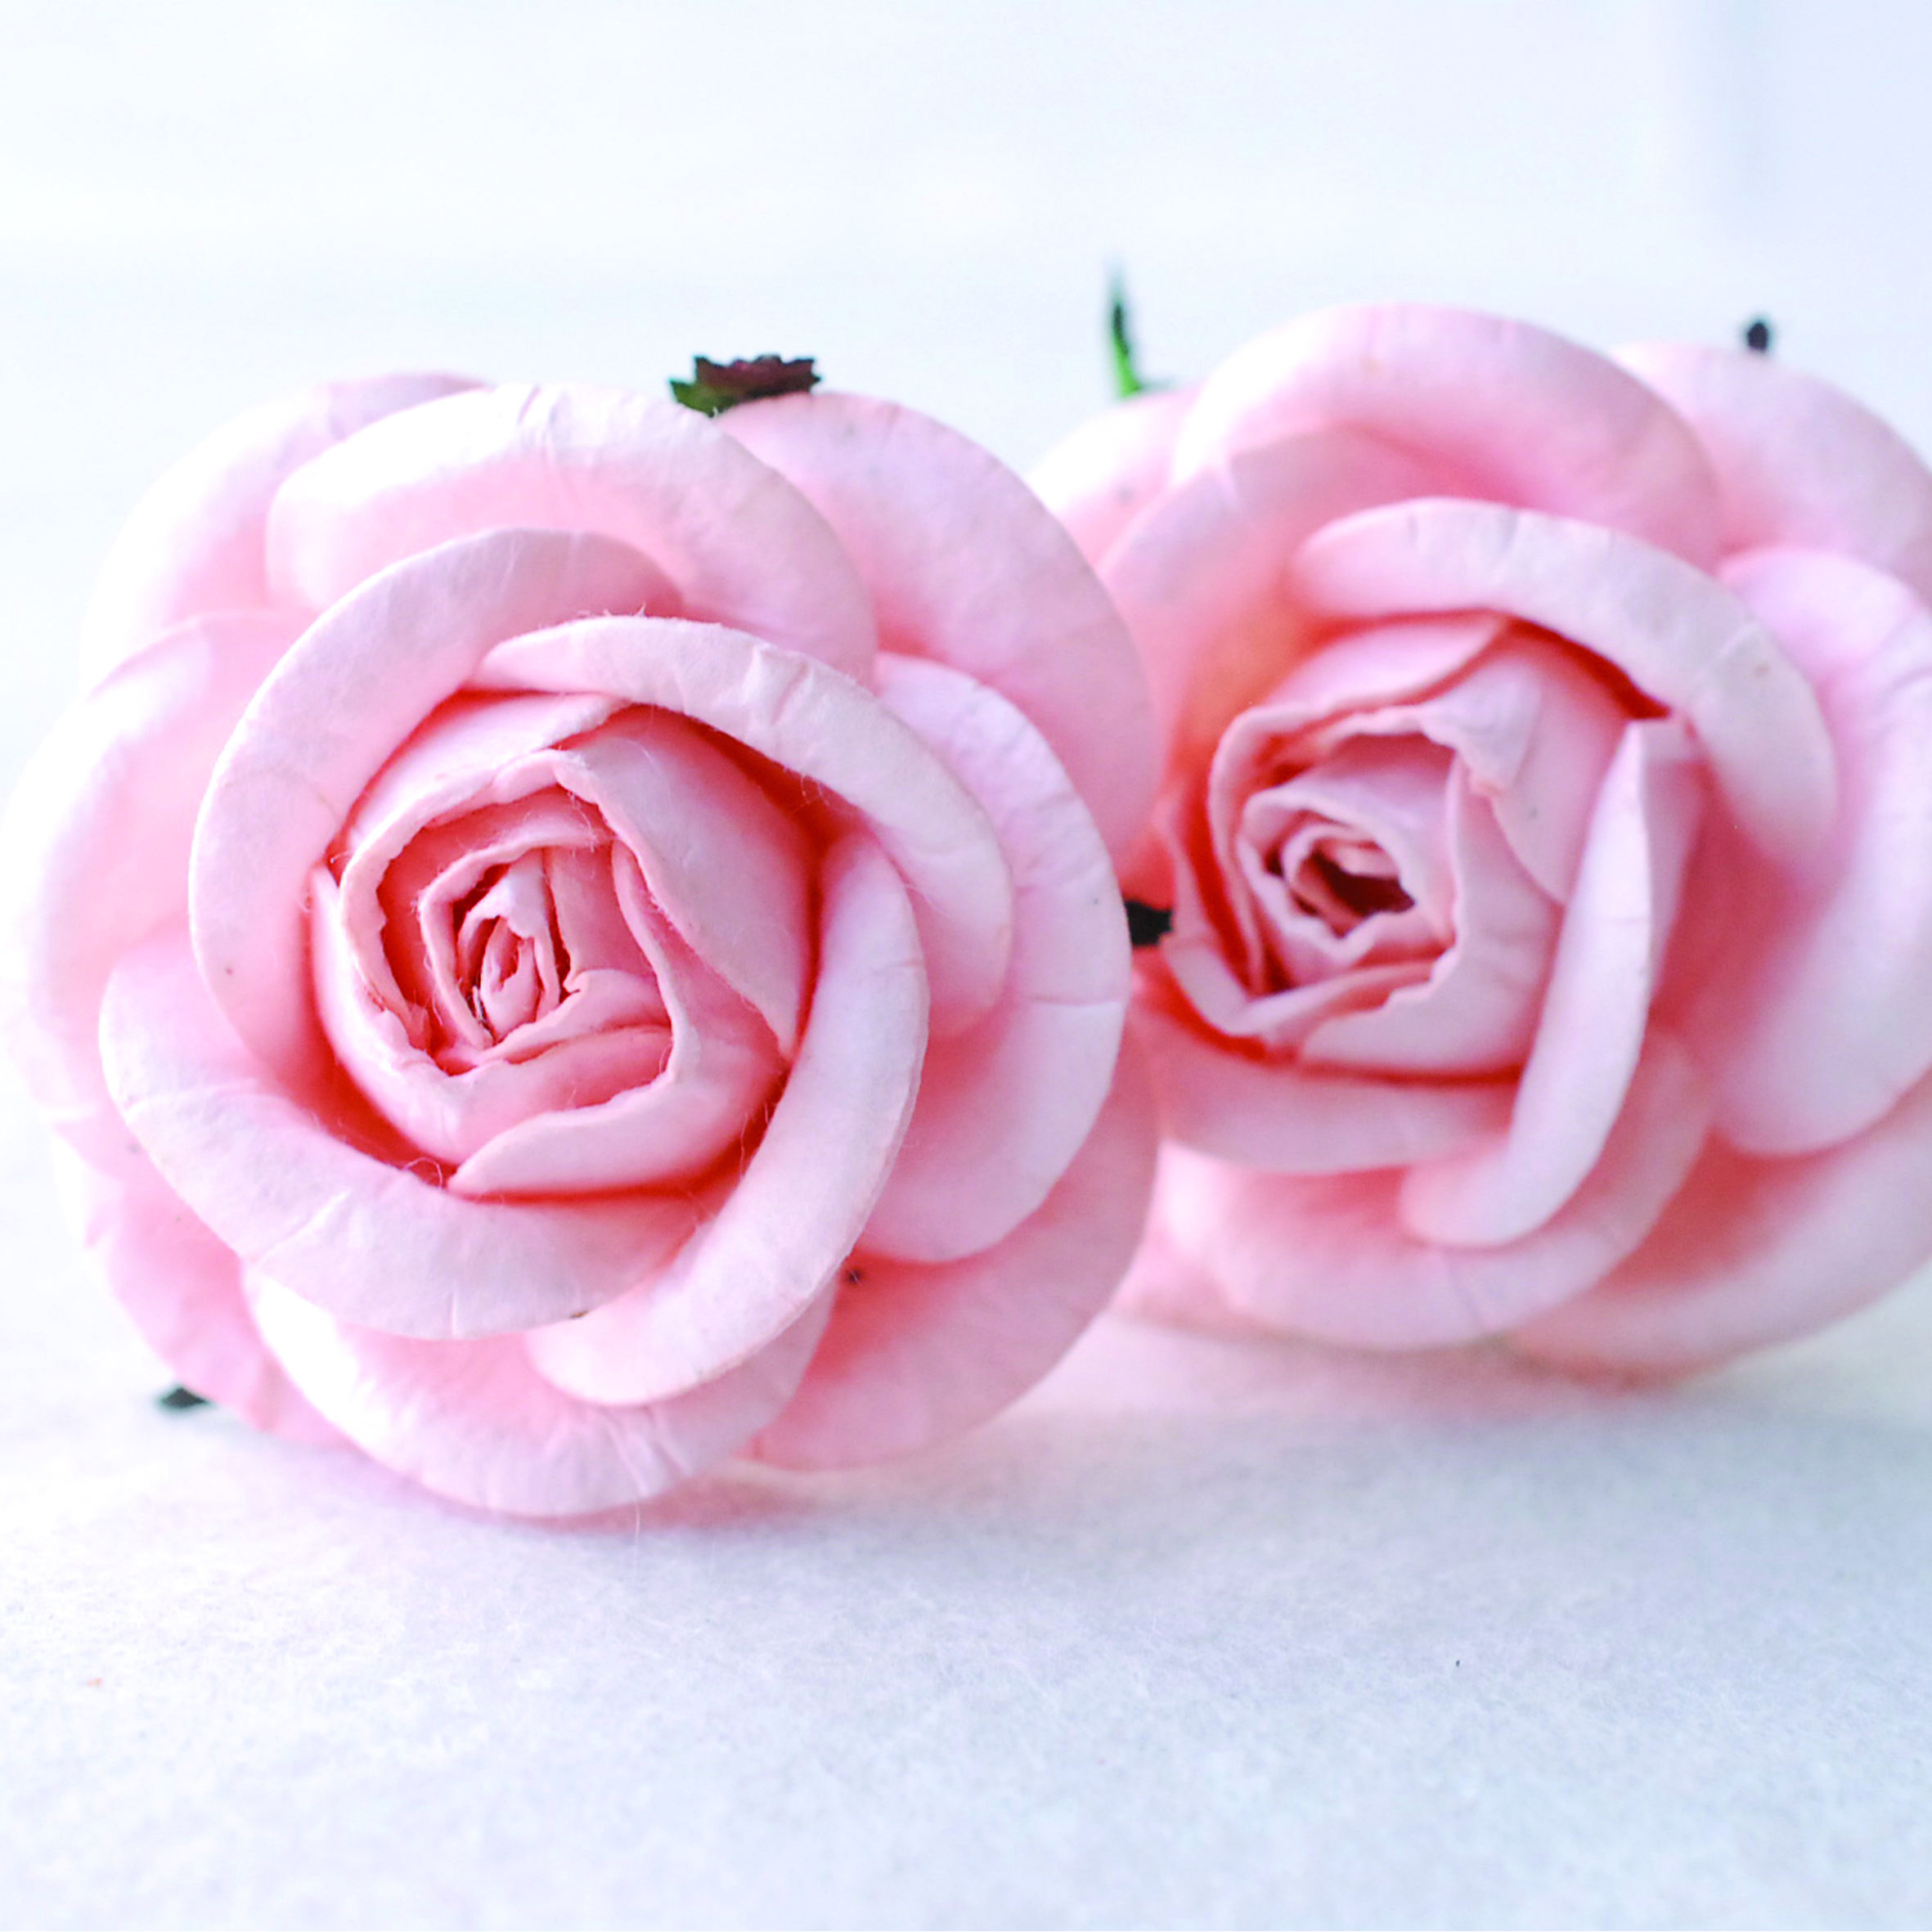 roses paper flowers medium size4.5 cm., mulberry paper flowers, handmade